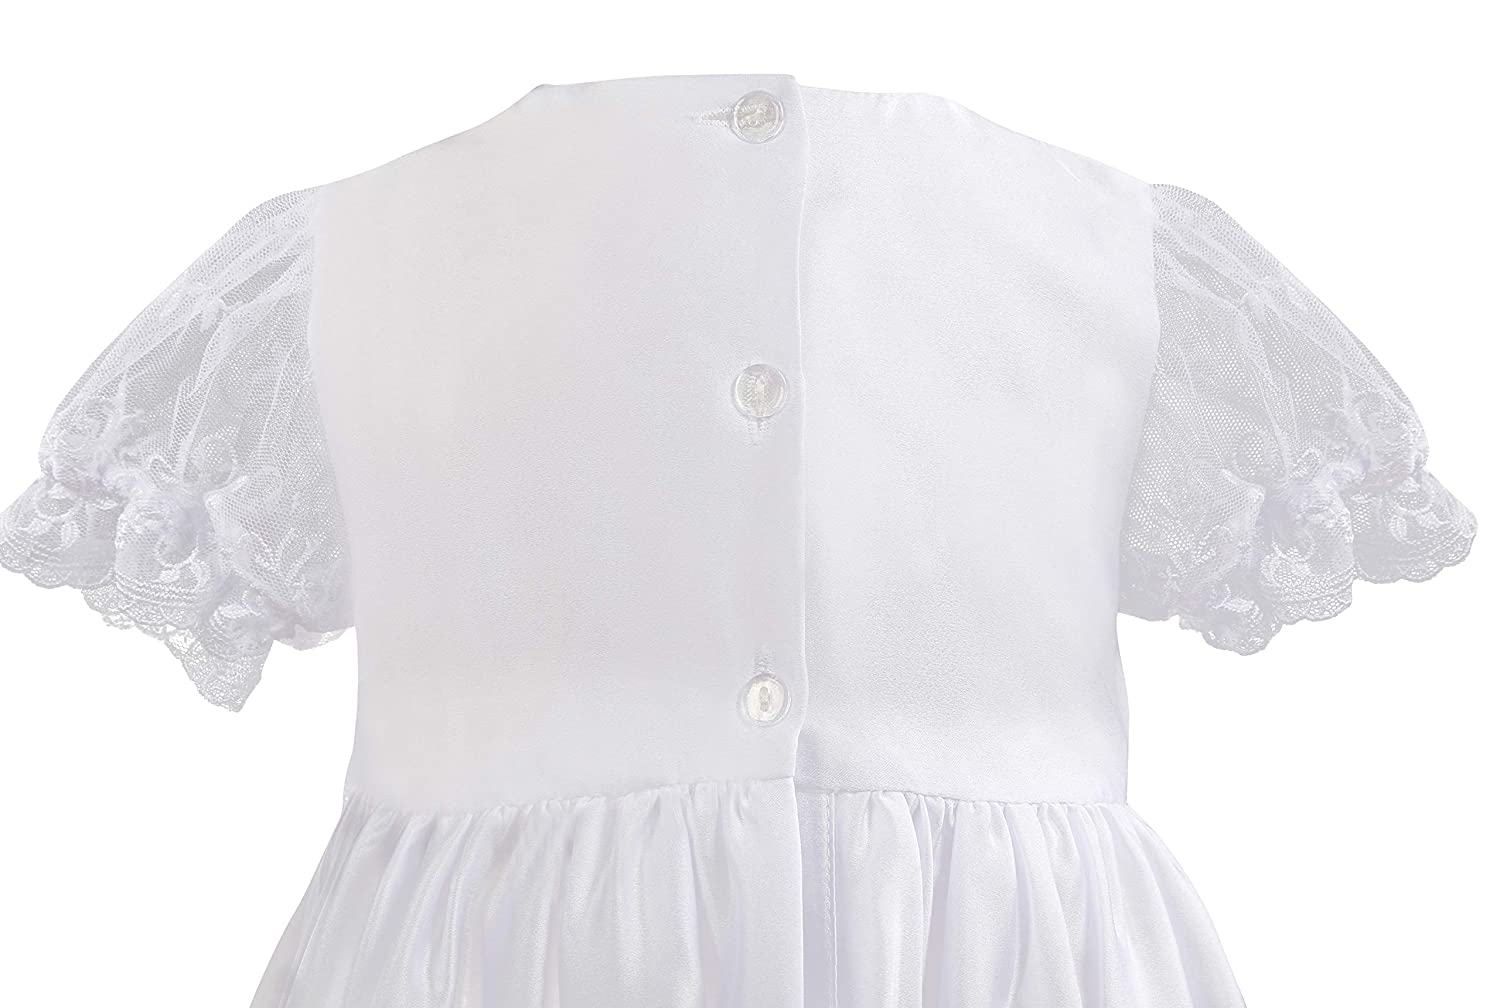 NIMBLE Baby Girls Baptism Christening Embroidered Gown with Headband for 0-12 Months